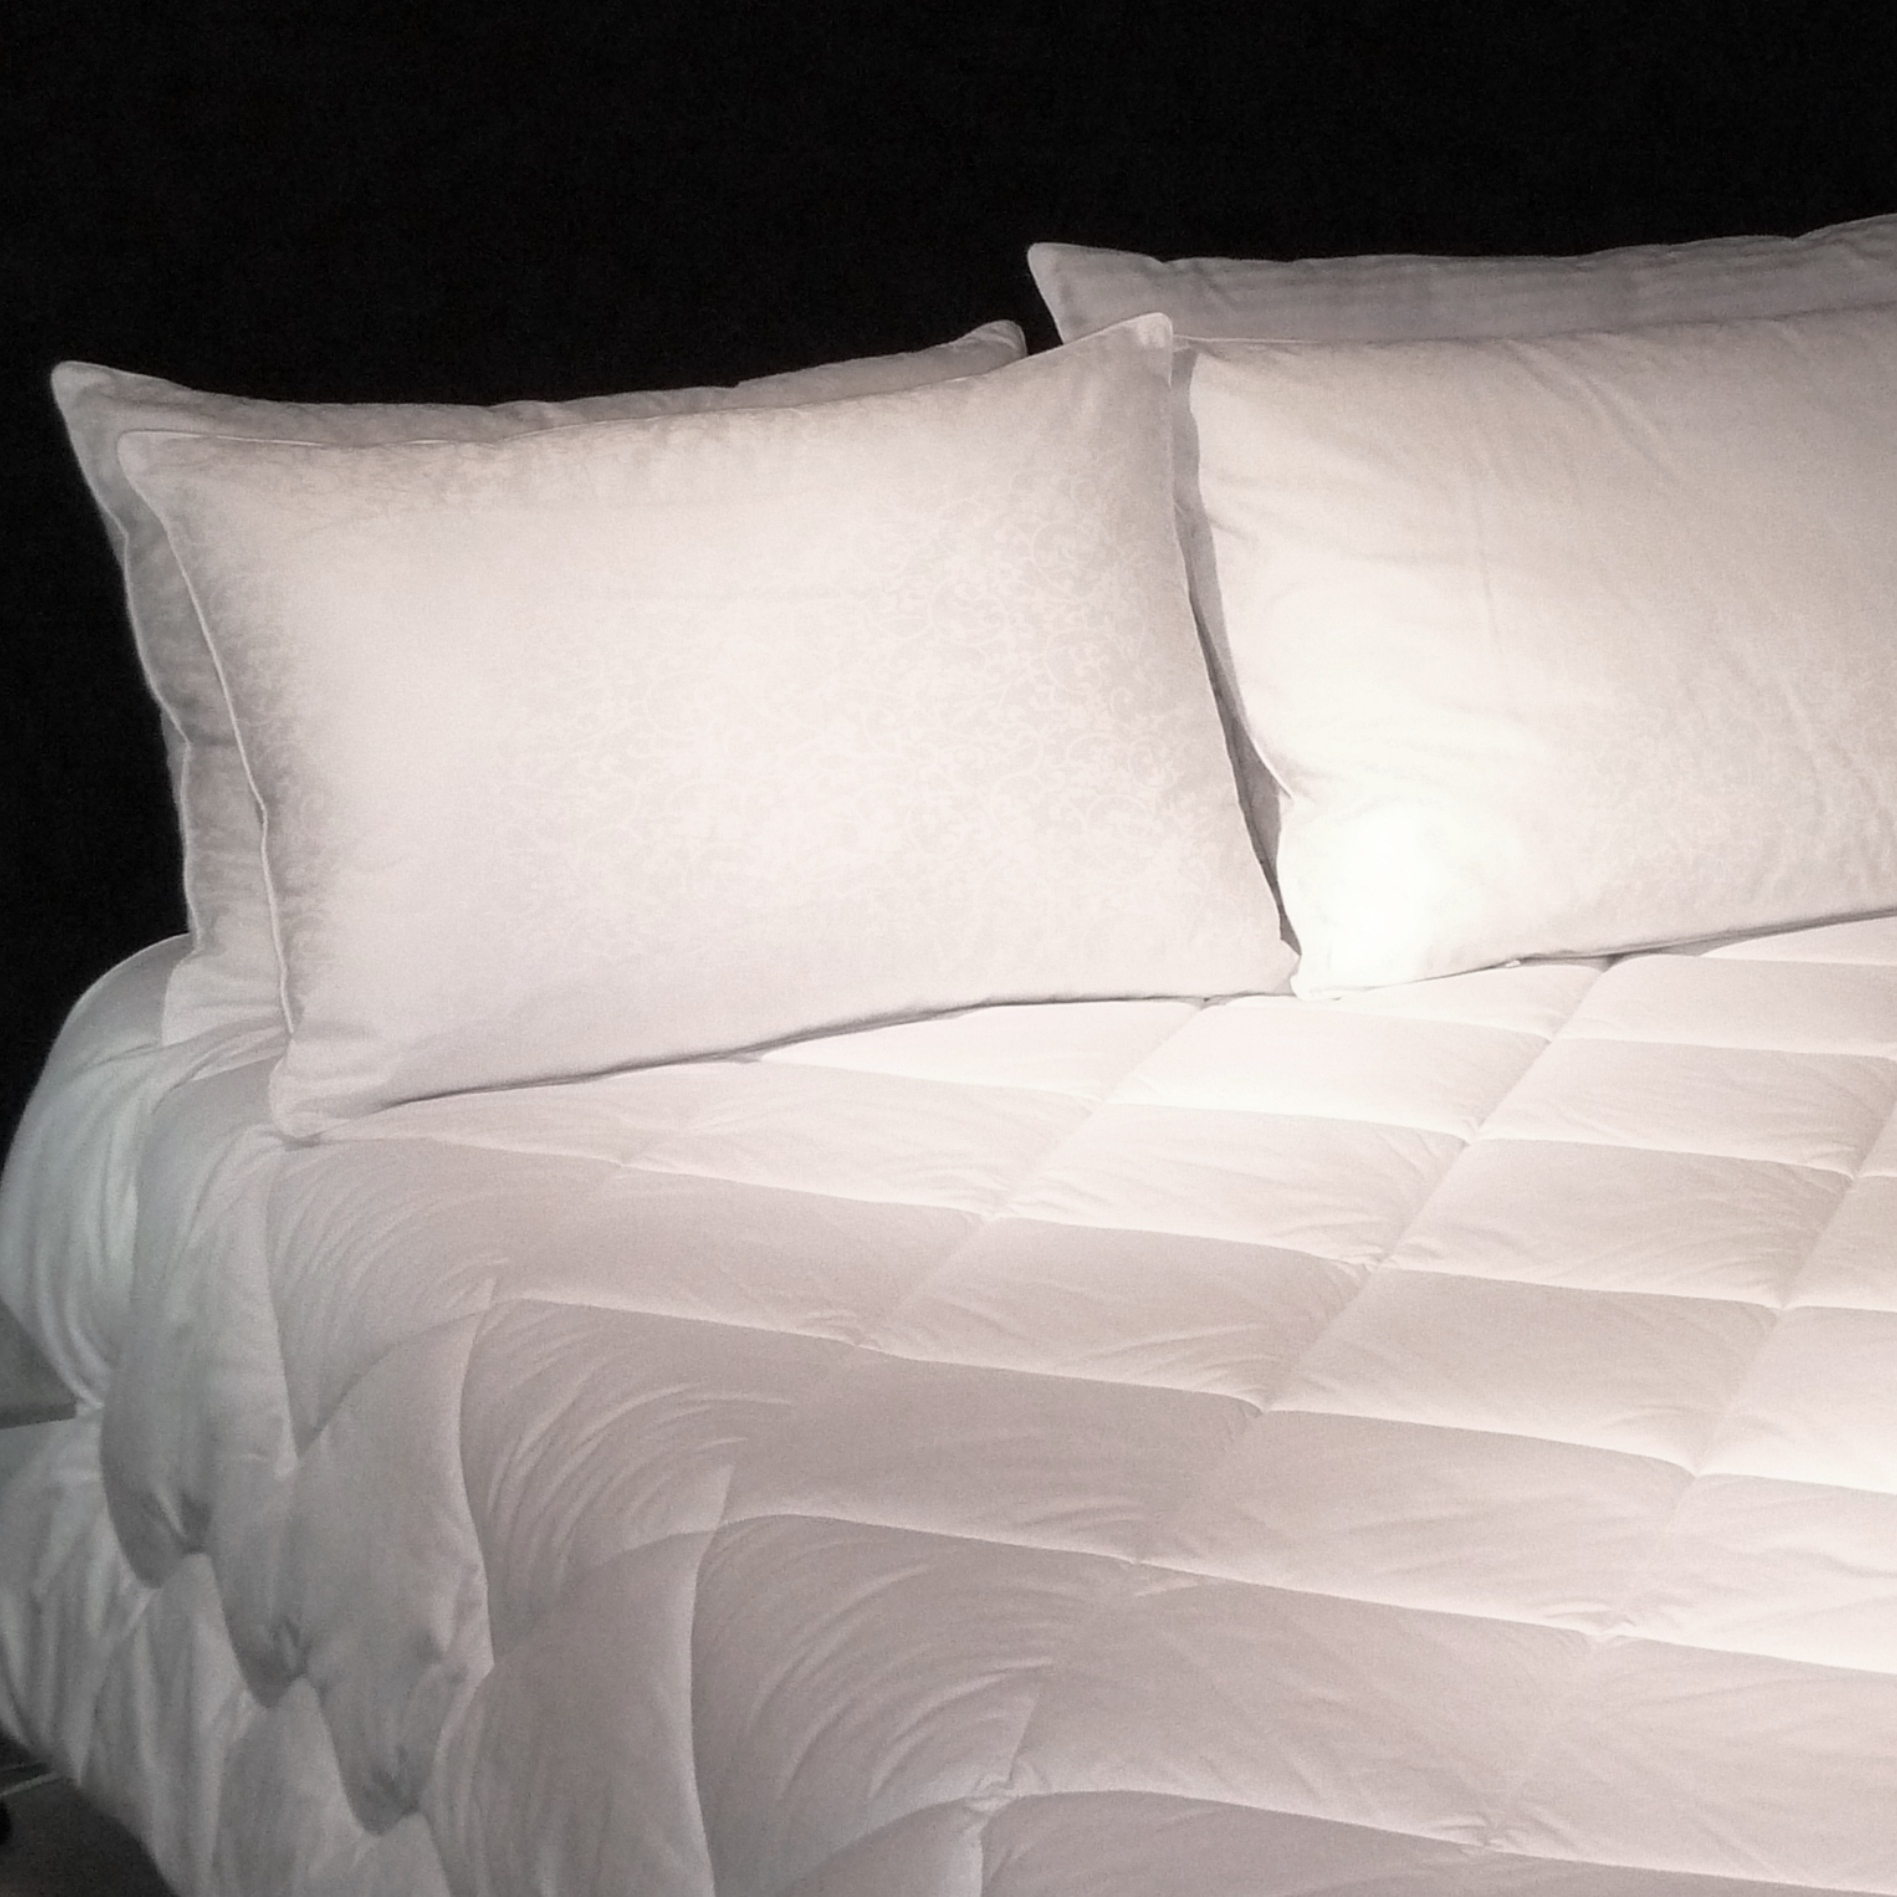 a zen bamboo sleep best comforters good luxury night s for comforter alternative cooling